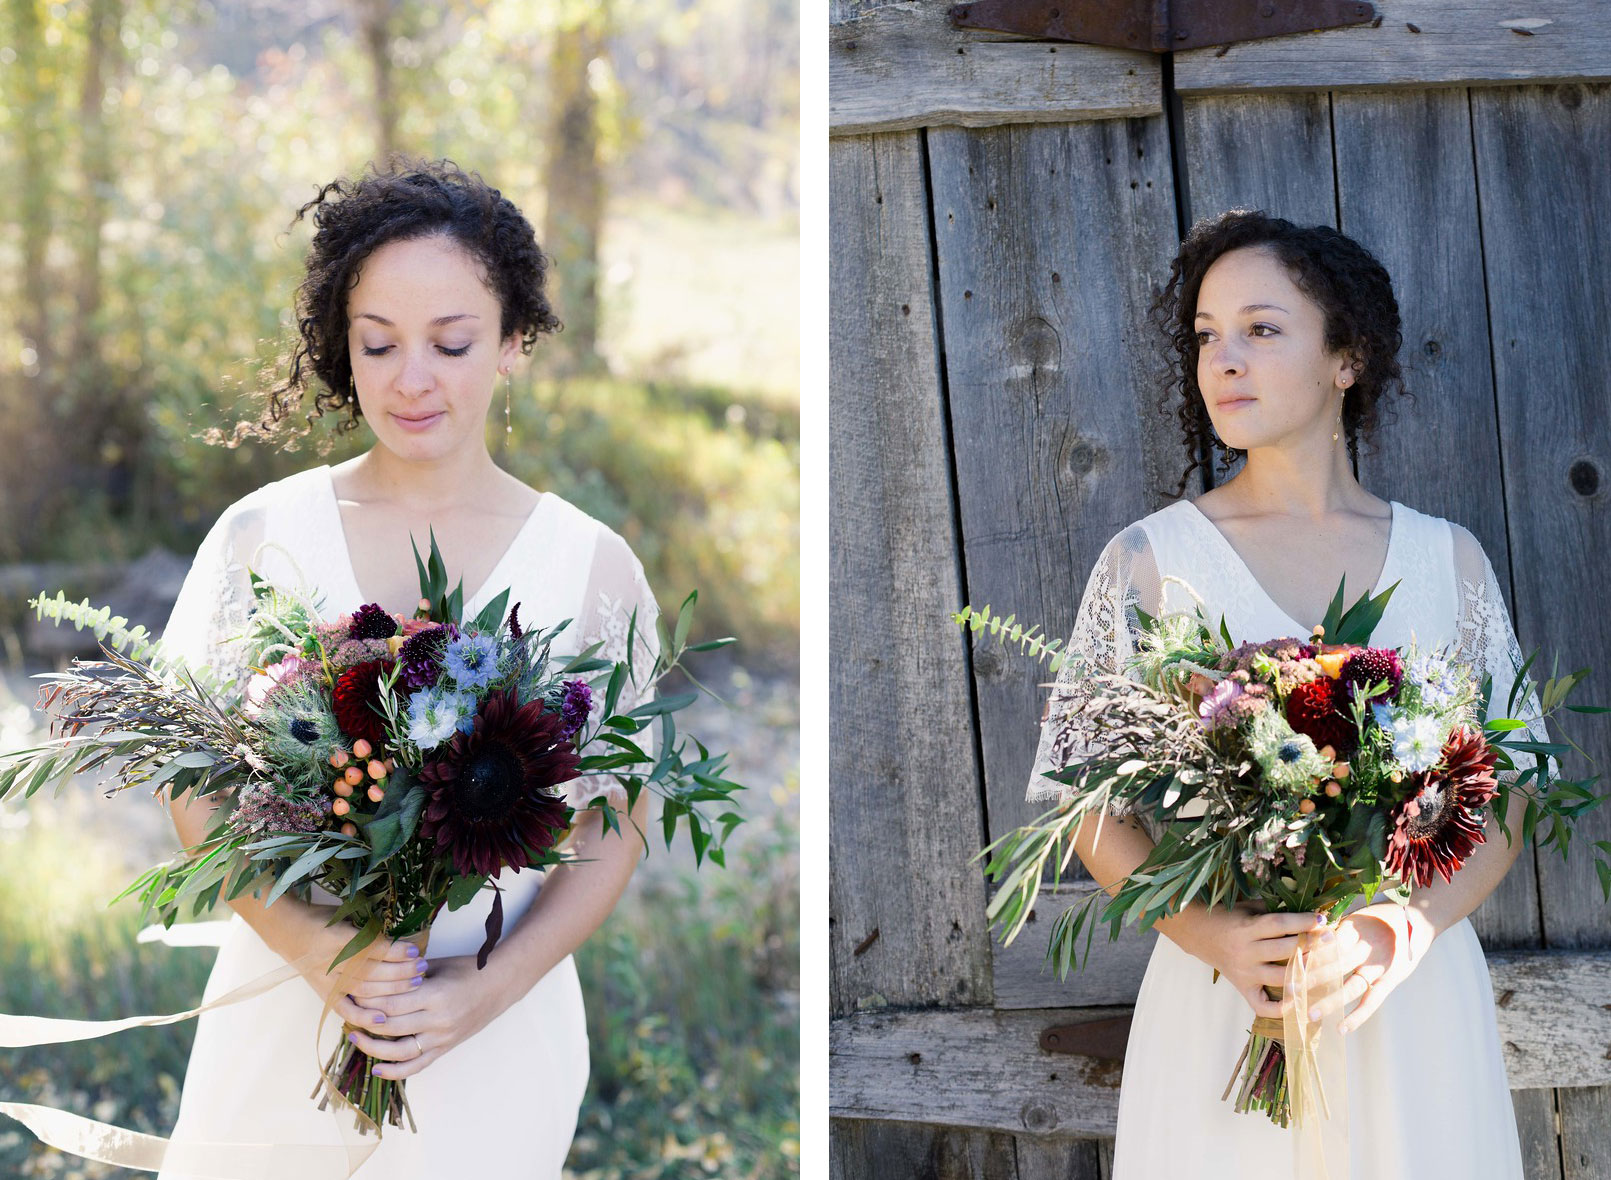 Stunning wedding bouquet by April's Garden